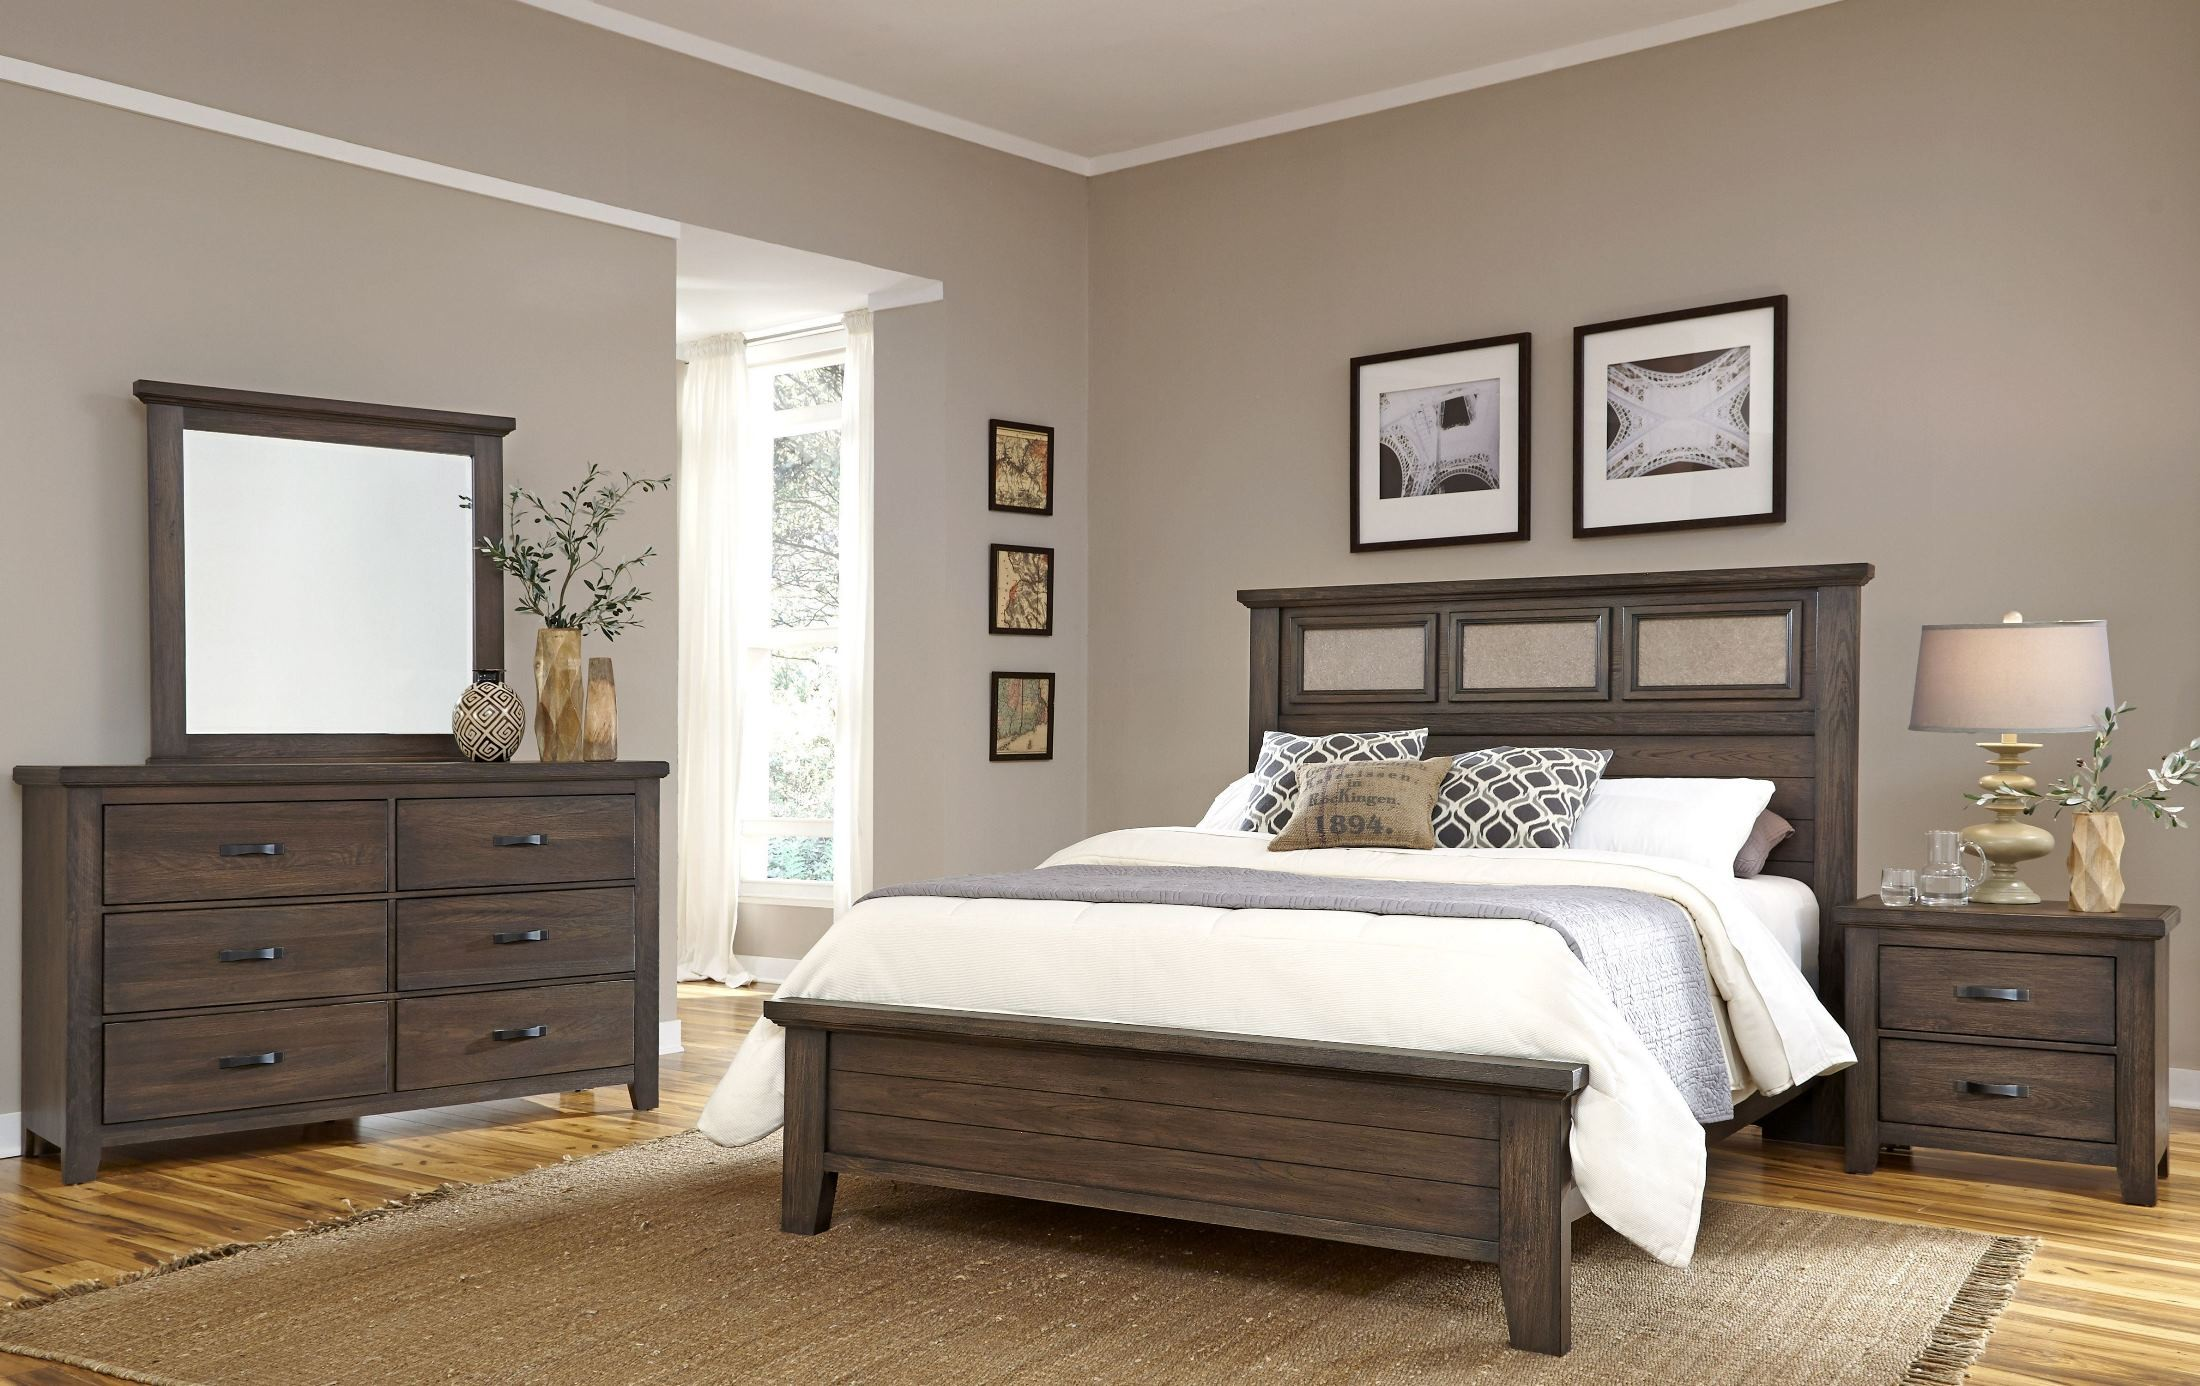 Cassel Park Rich Cocoa Tile Bedroom Set 518 559 855 922 Vaughan Bassett